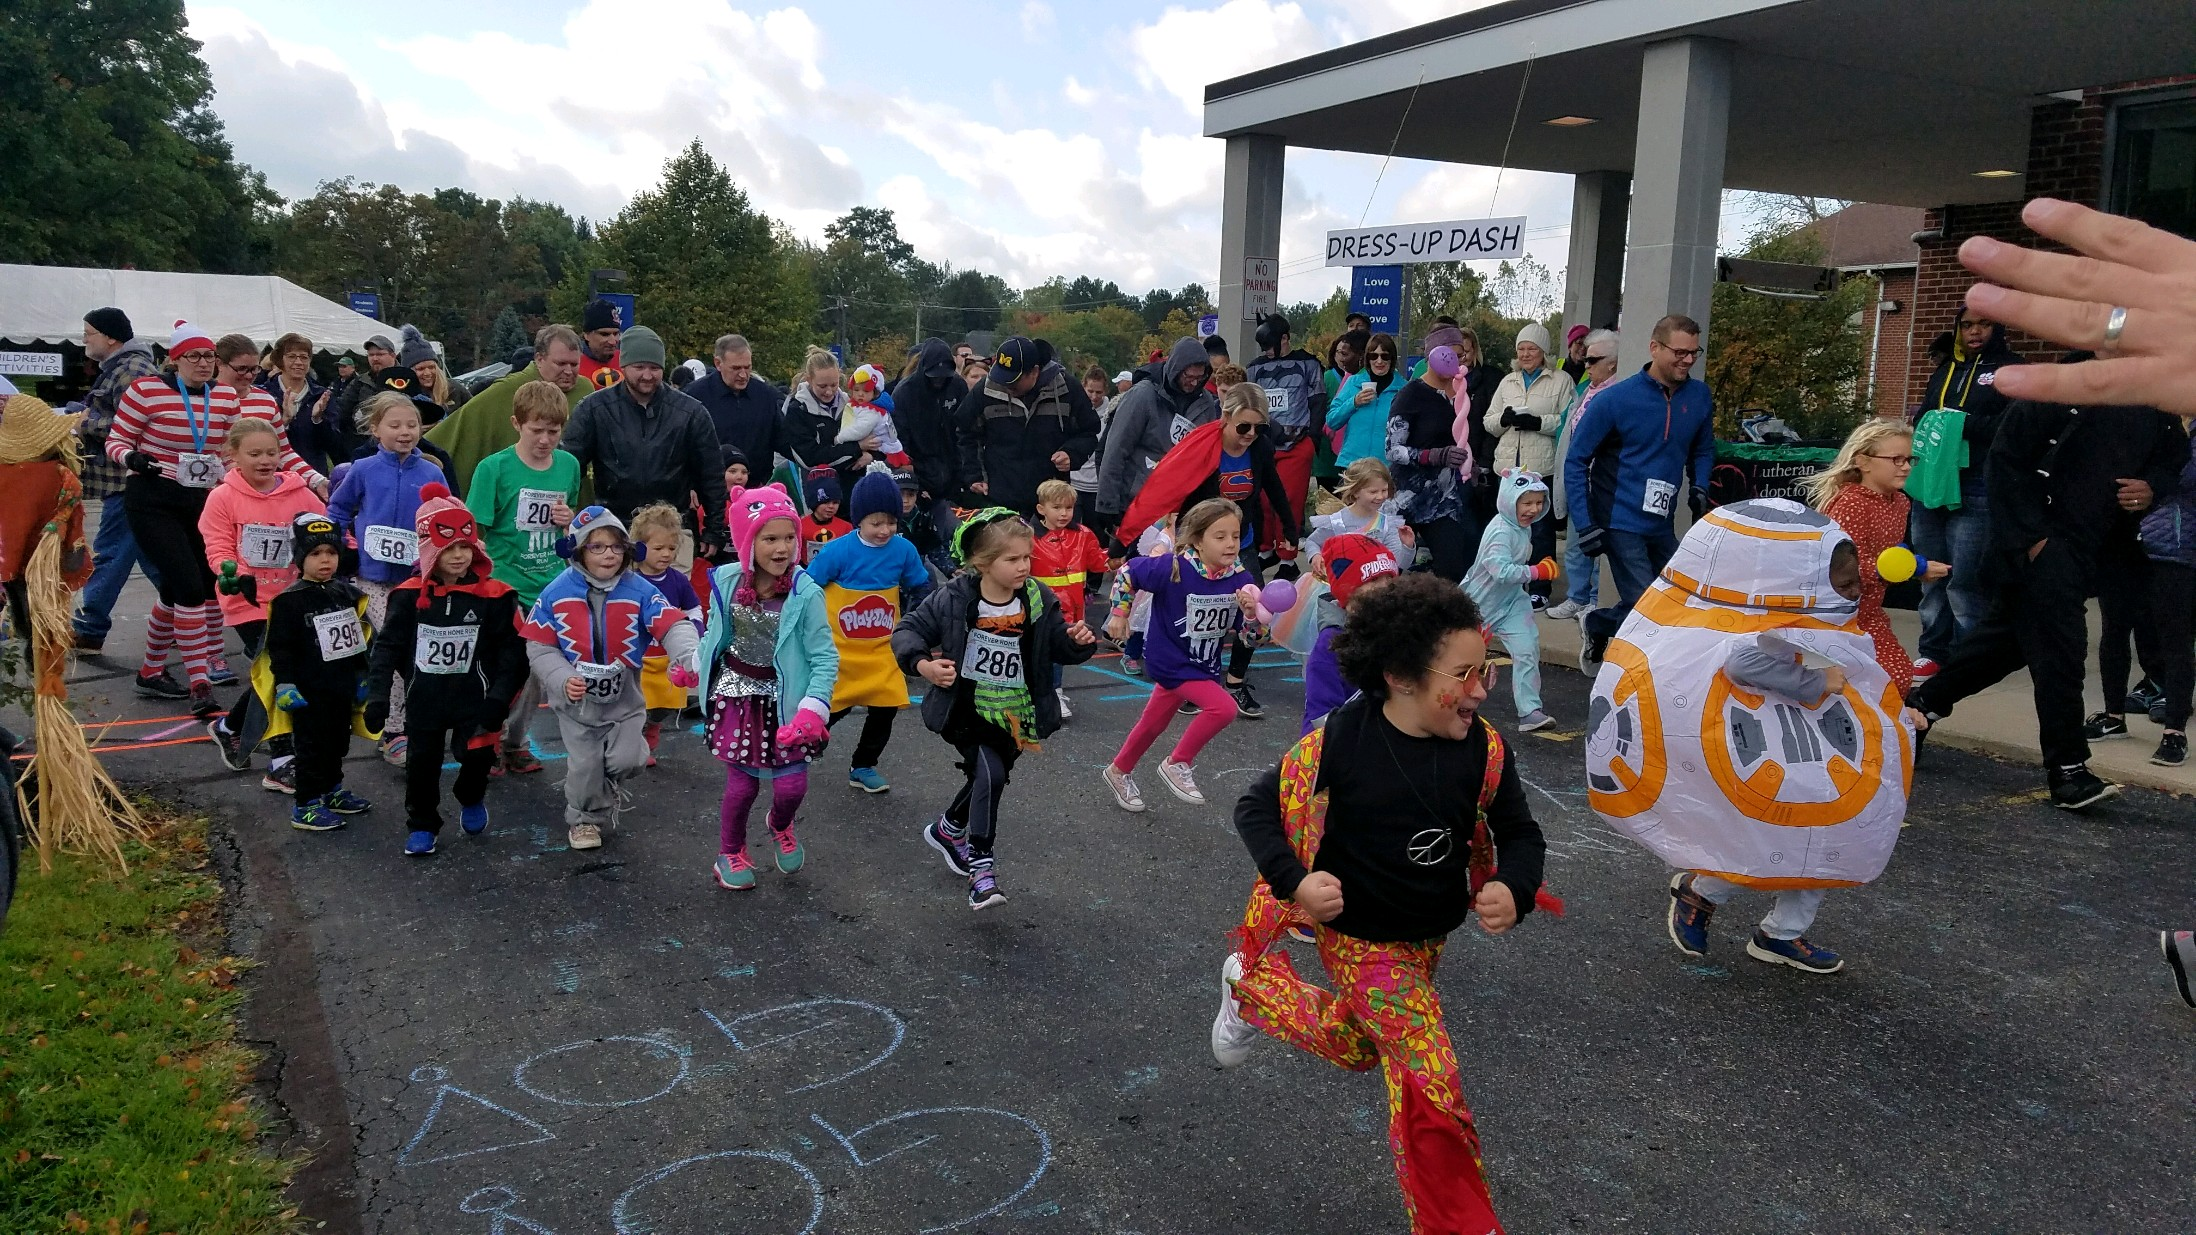 Kids and families participate in the 1K Dress-Up Dash at the 2018 Forever Home Run!